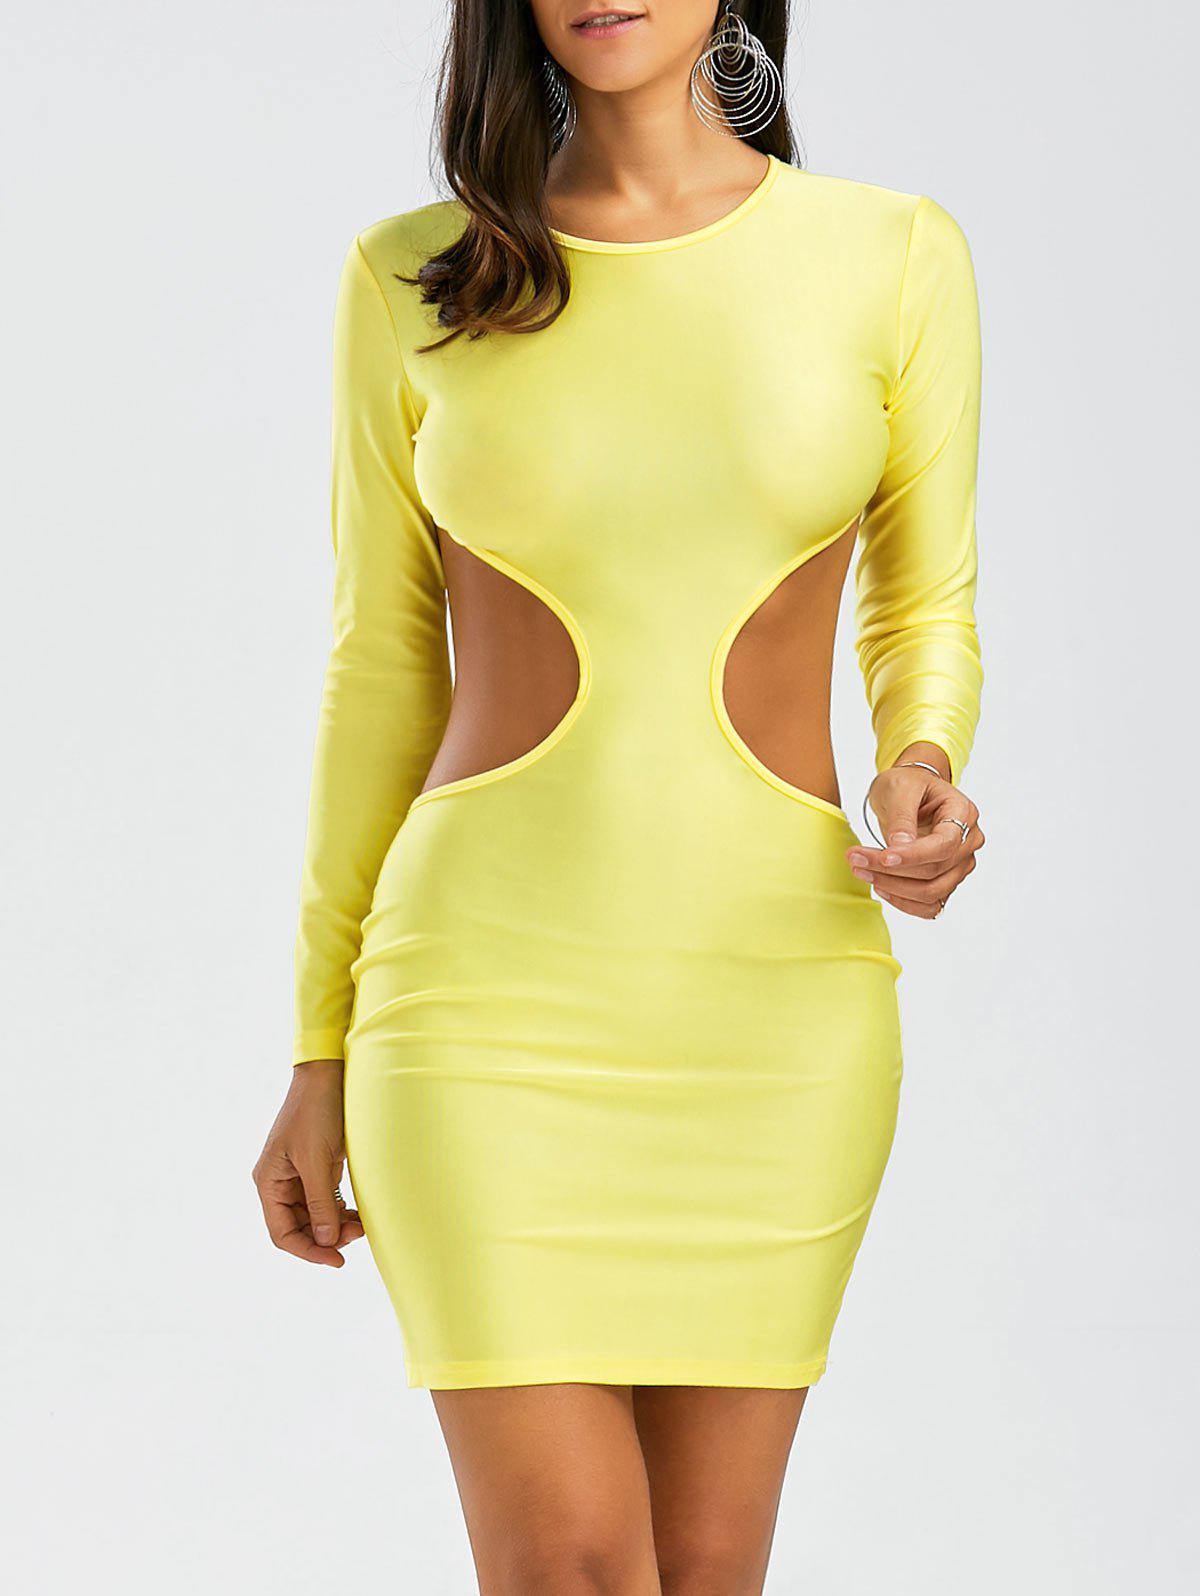 Open Back Cut Out Long Sleeve Bodycon Dress - YELLOW M